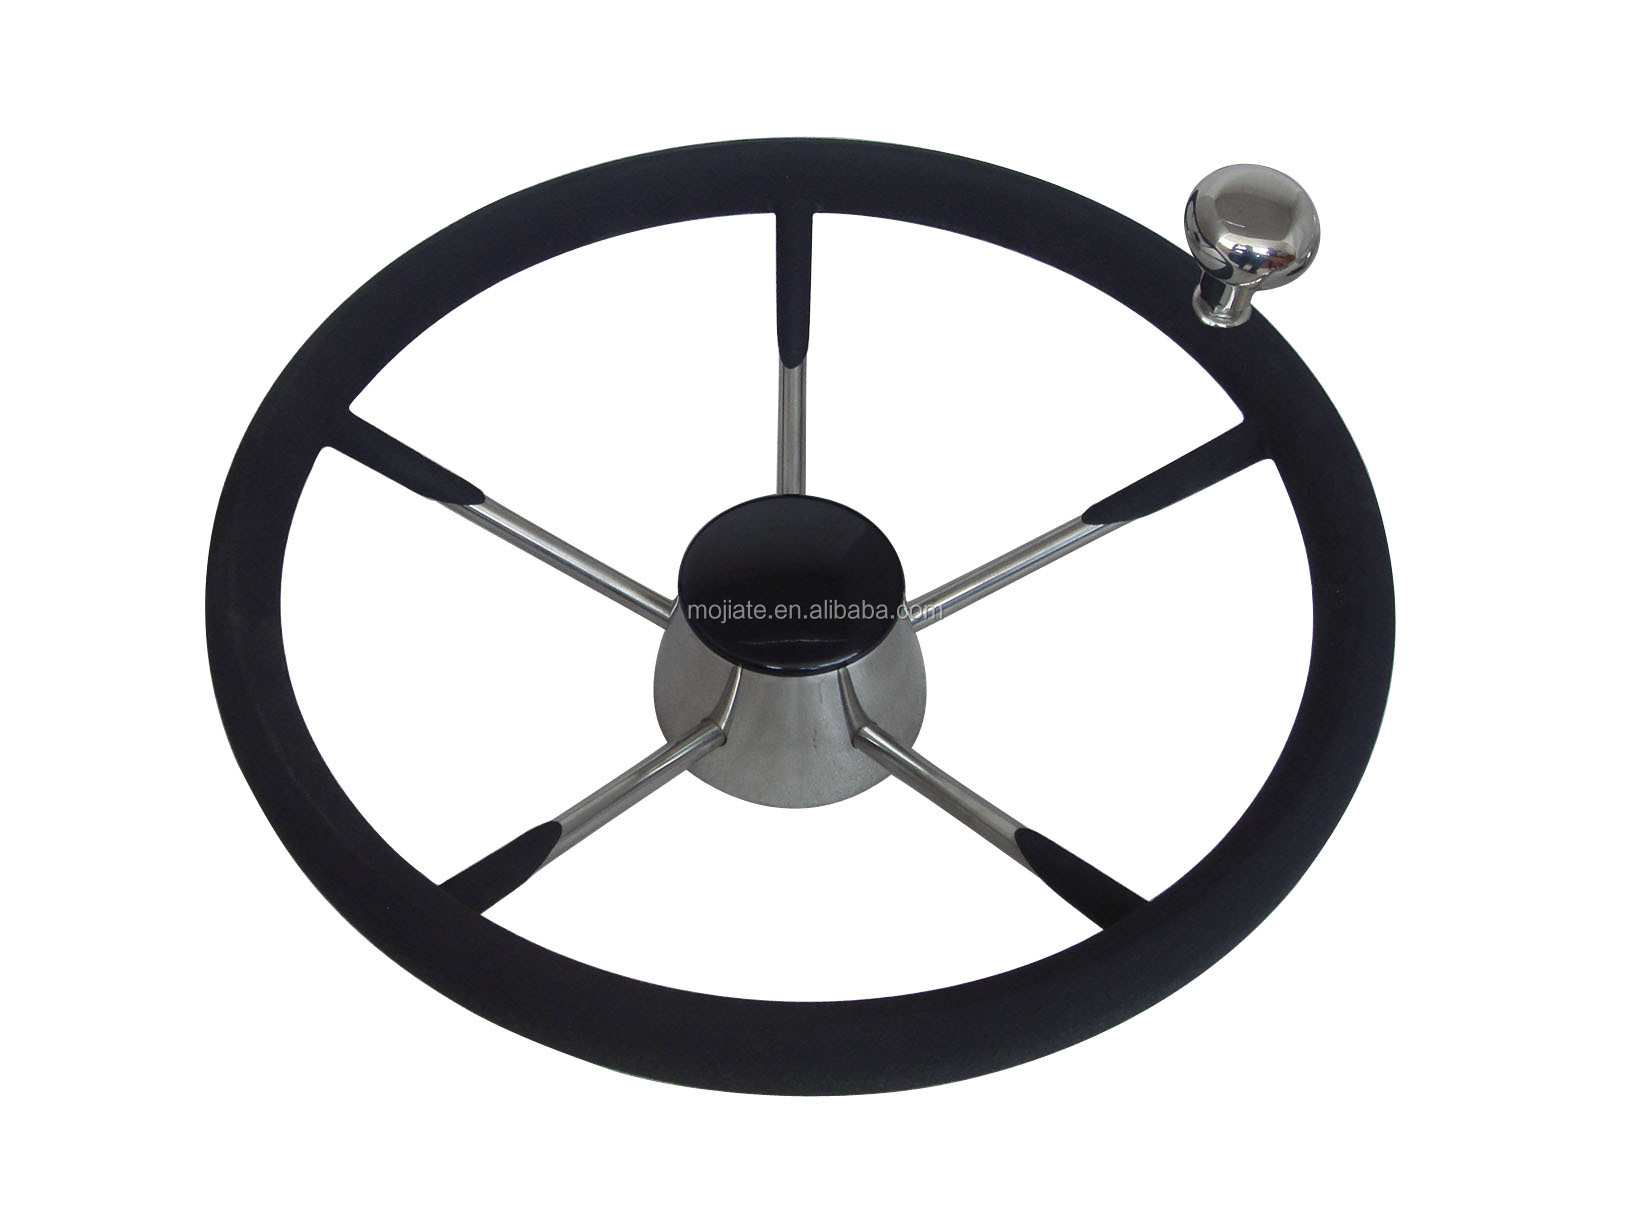 5 Spokes 11 Quot Steering Wheels Stainless Steel With Black